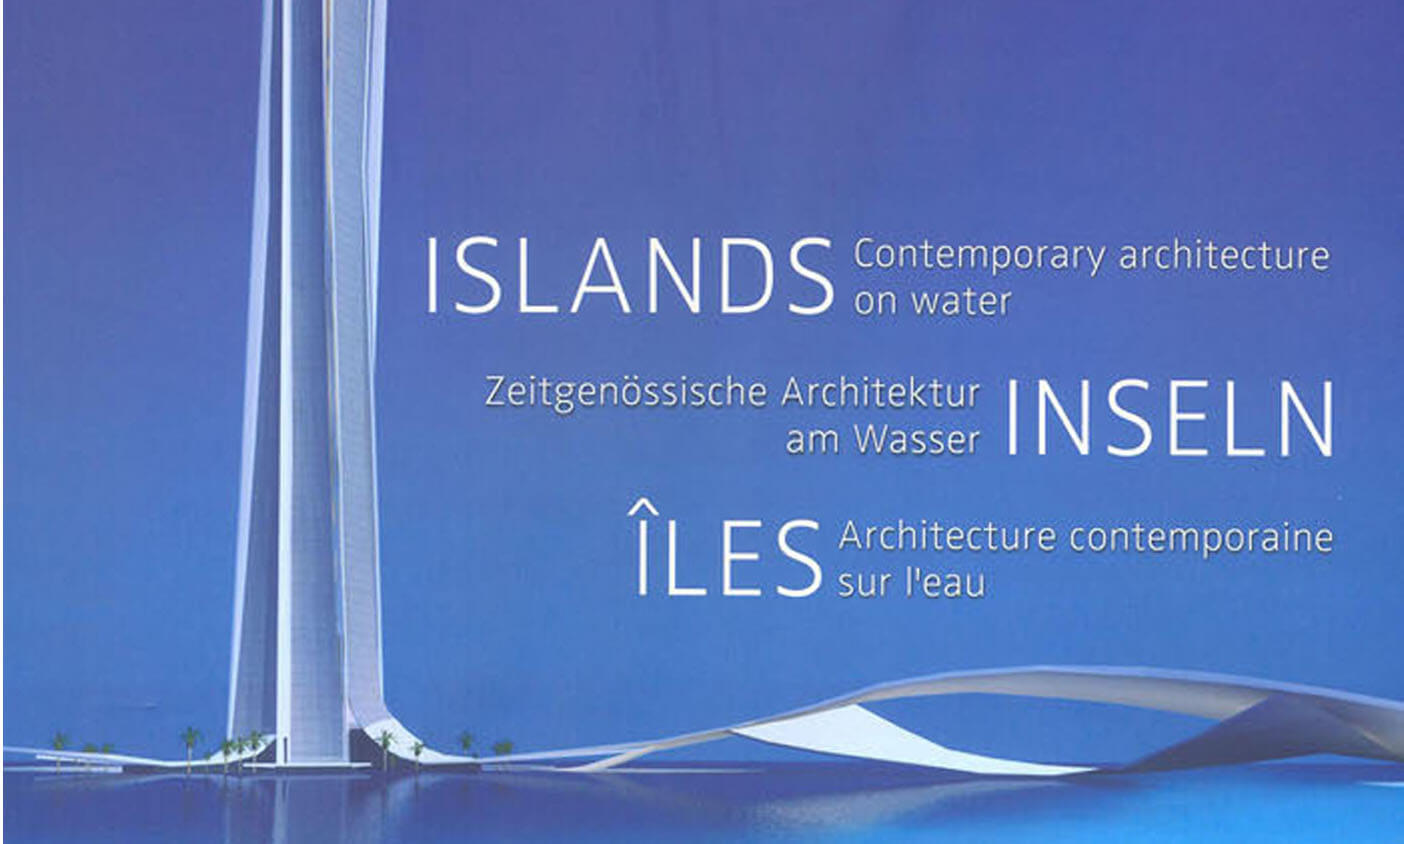 Waterstudio In Mark Fletcher's Book; Islands